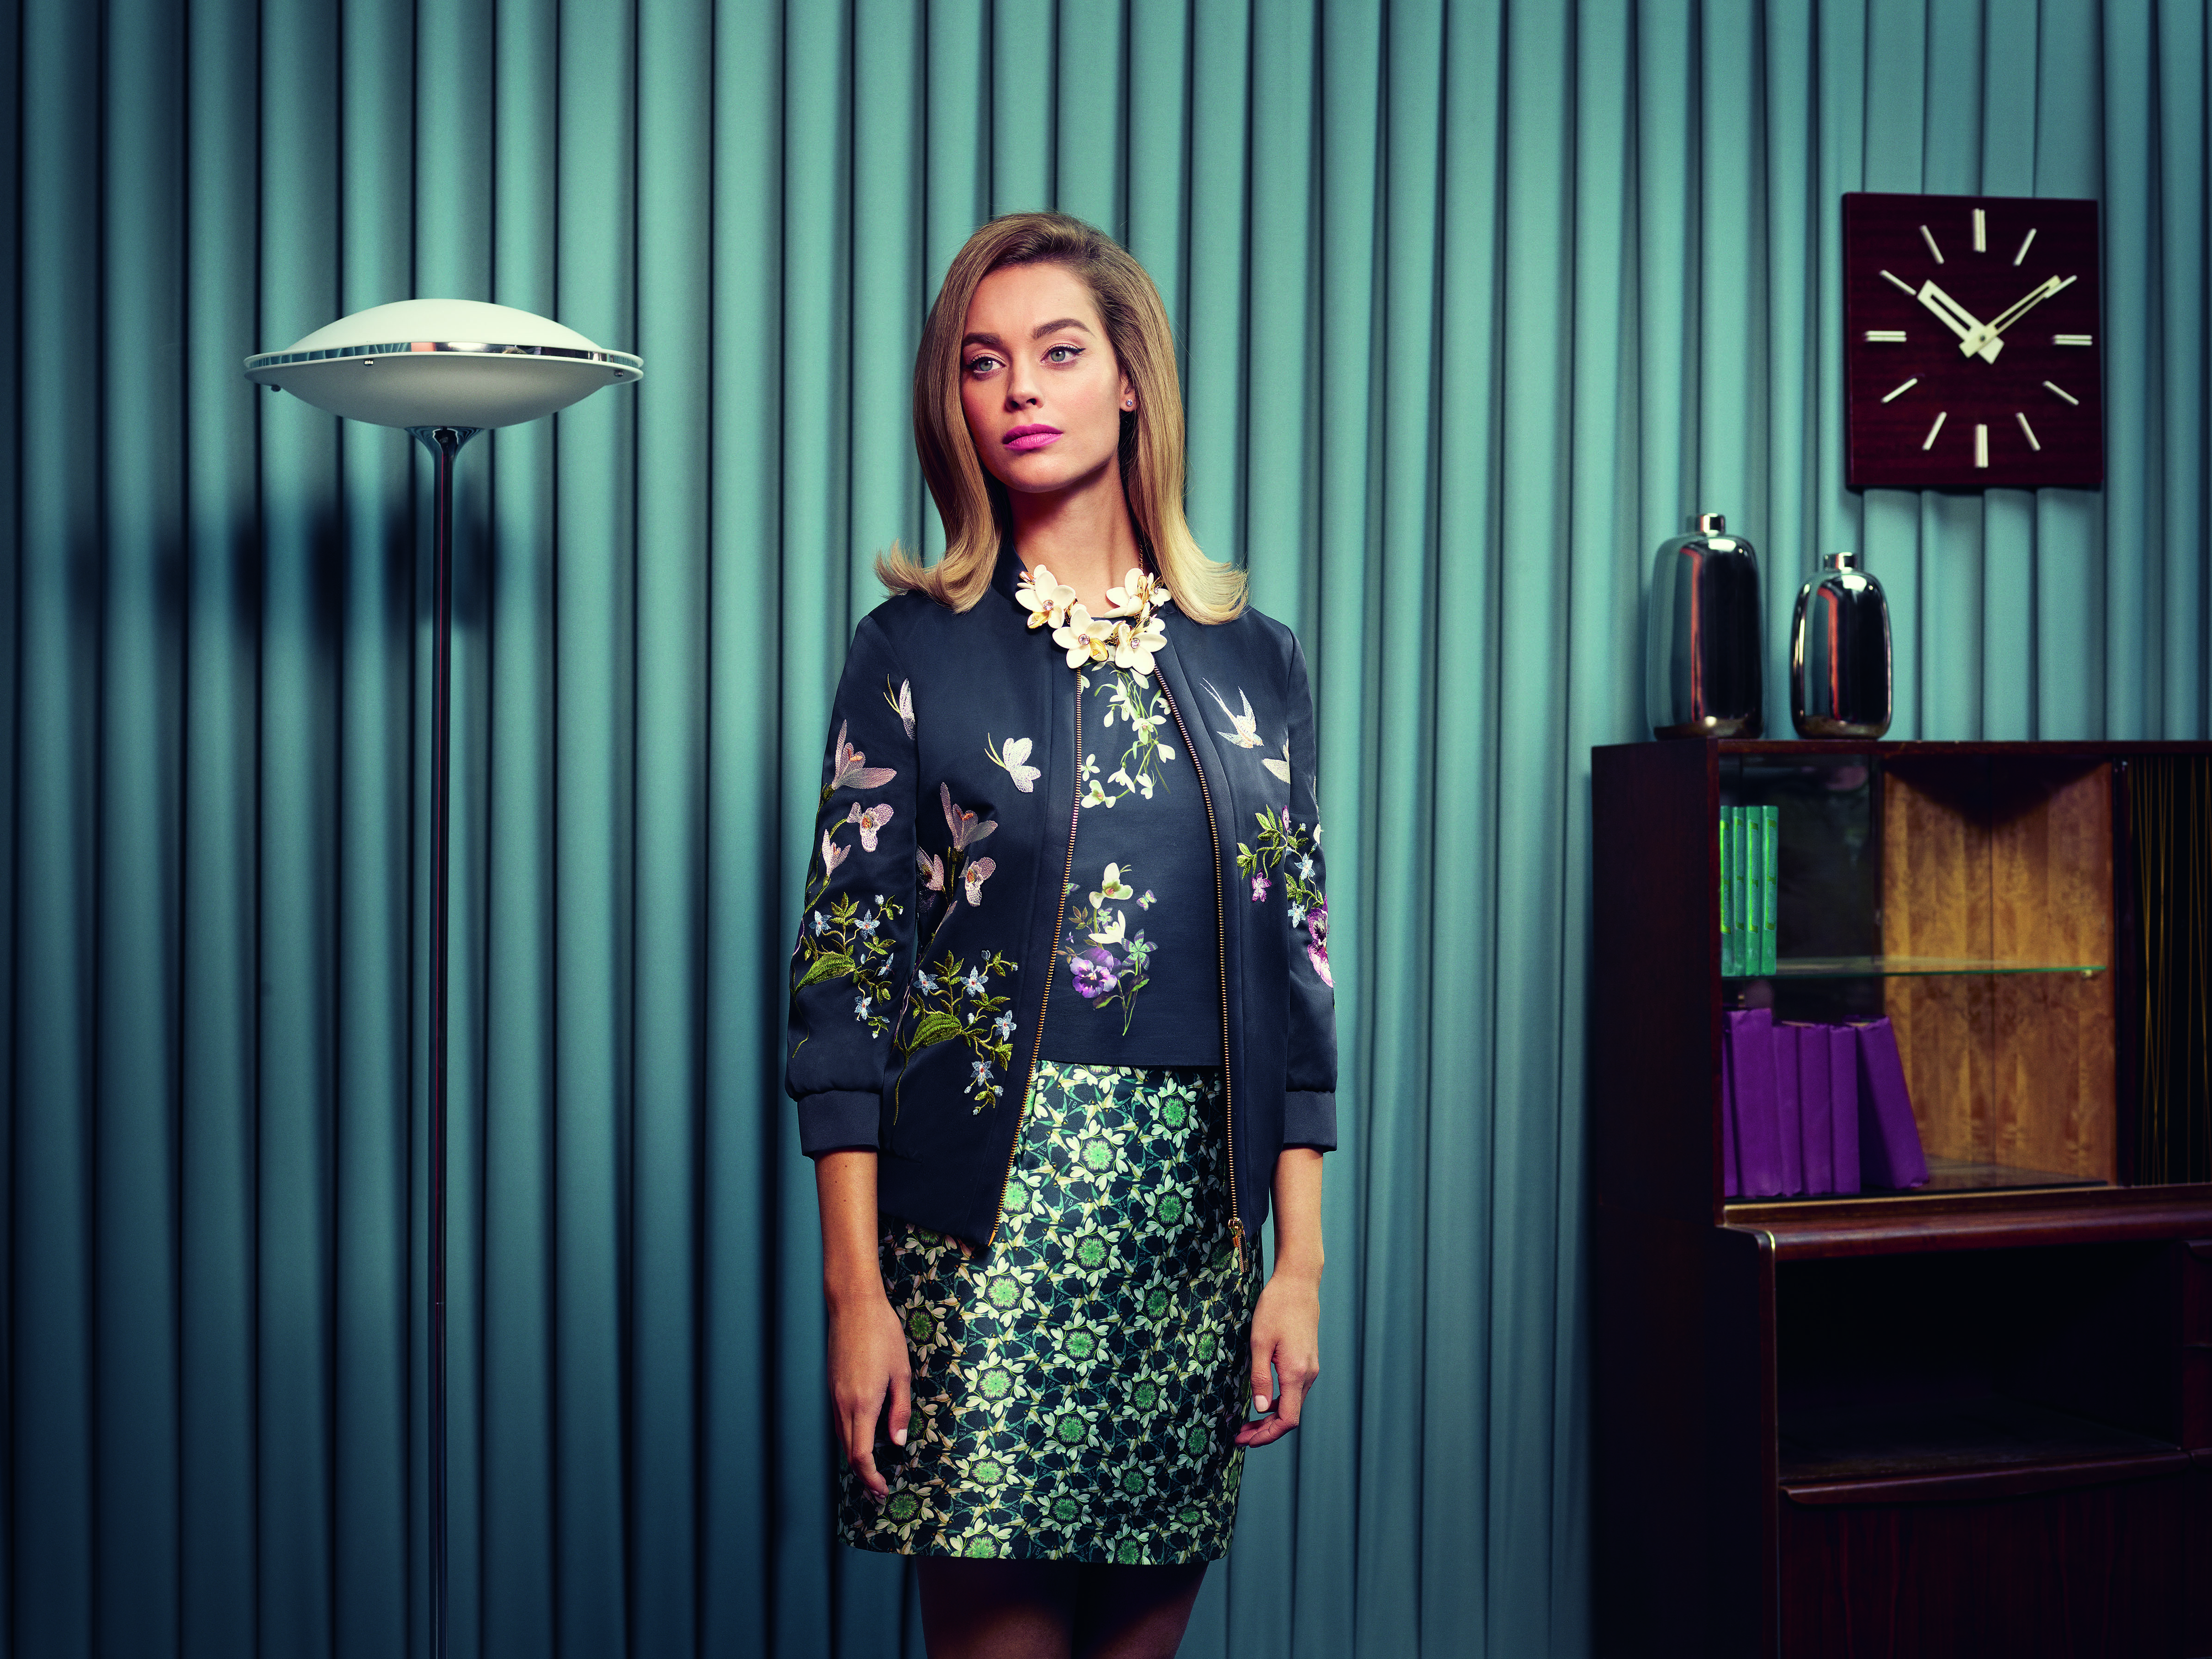 Ted Baker SS 2017 Ad Campaign 24